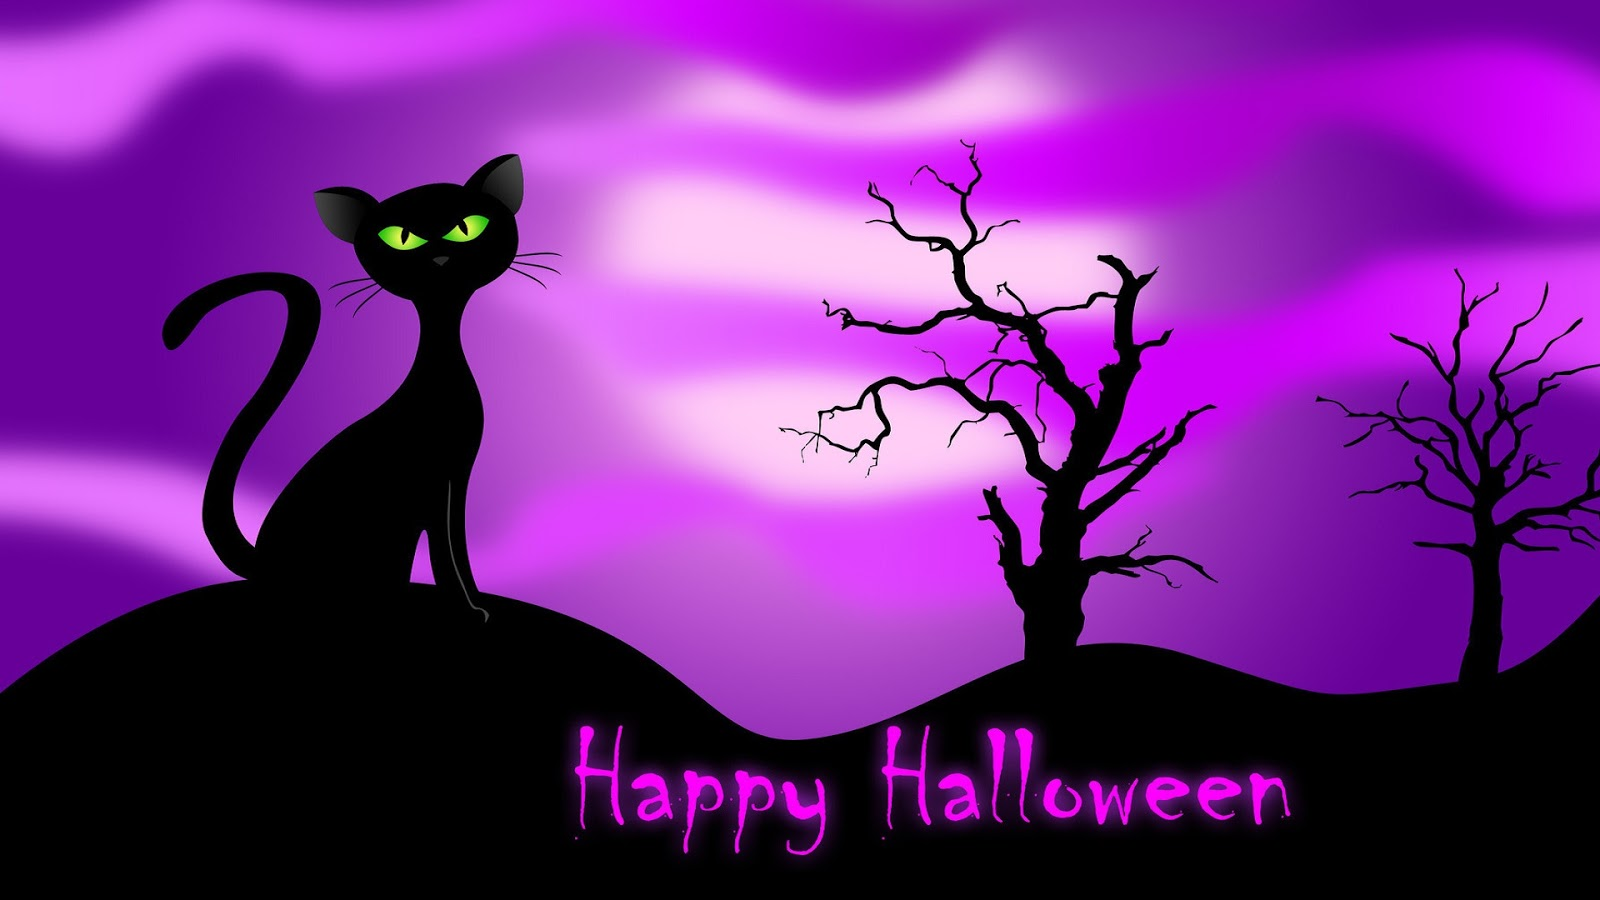 Happy Halloween Images HD For iPhone